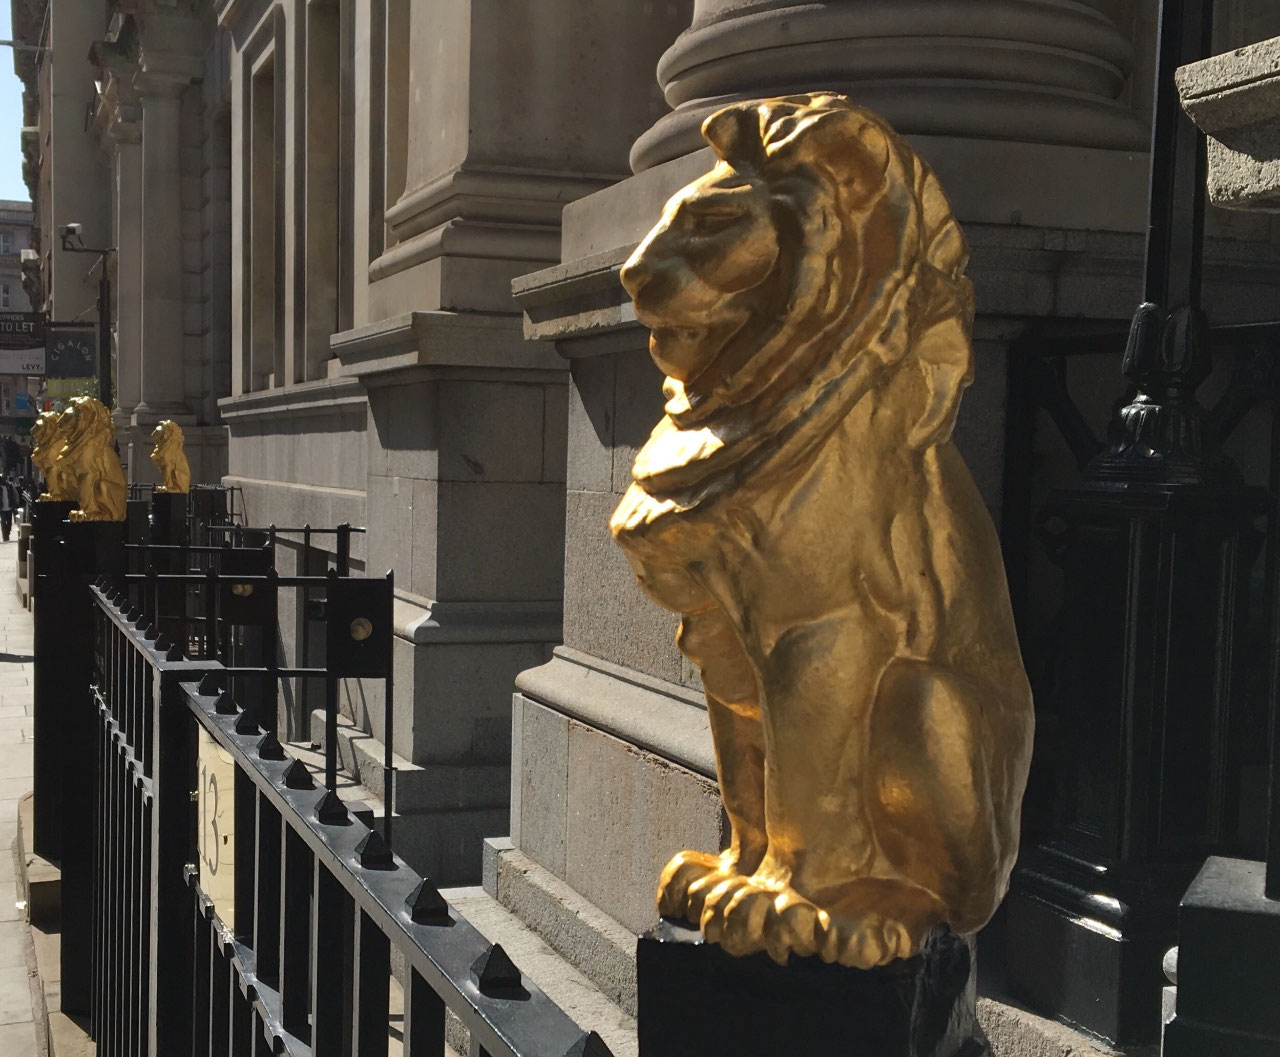 Lions outside the Law Society